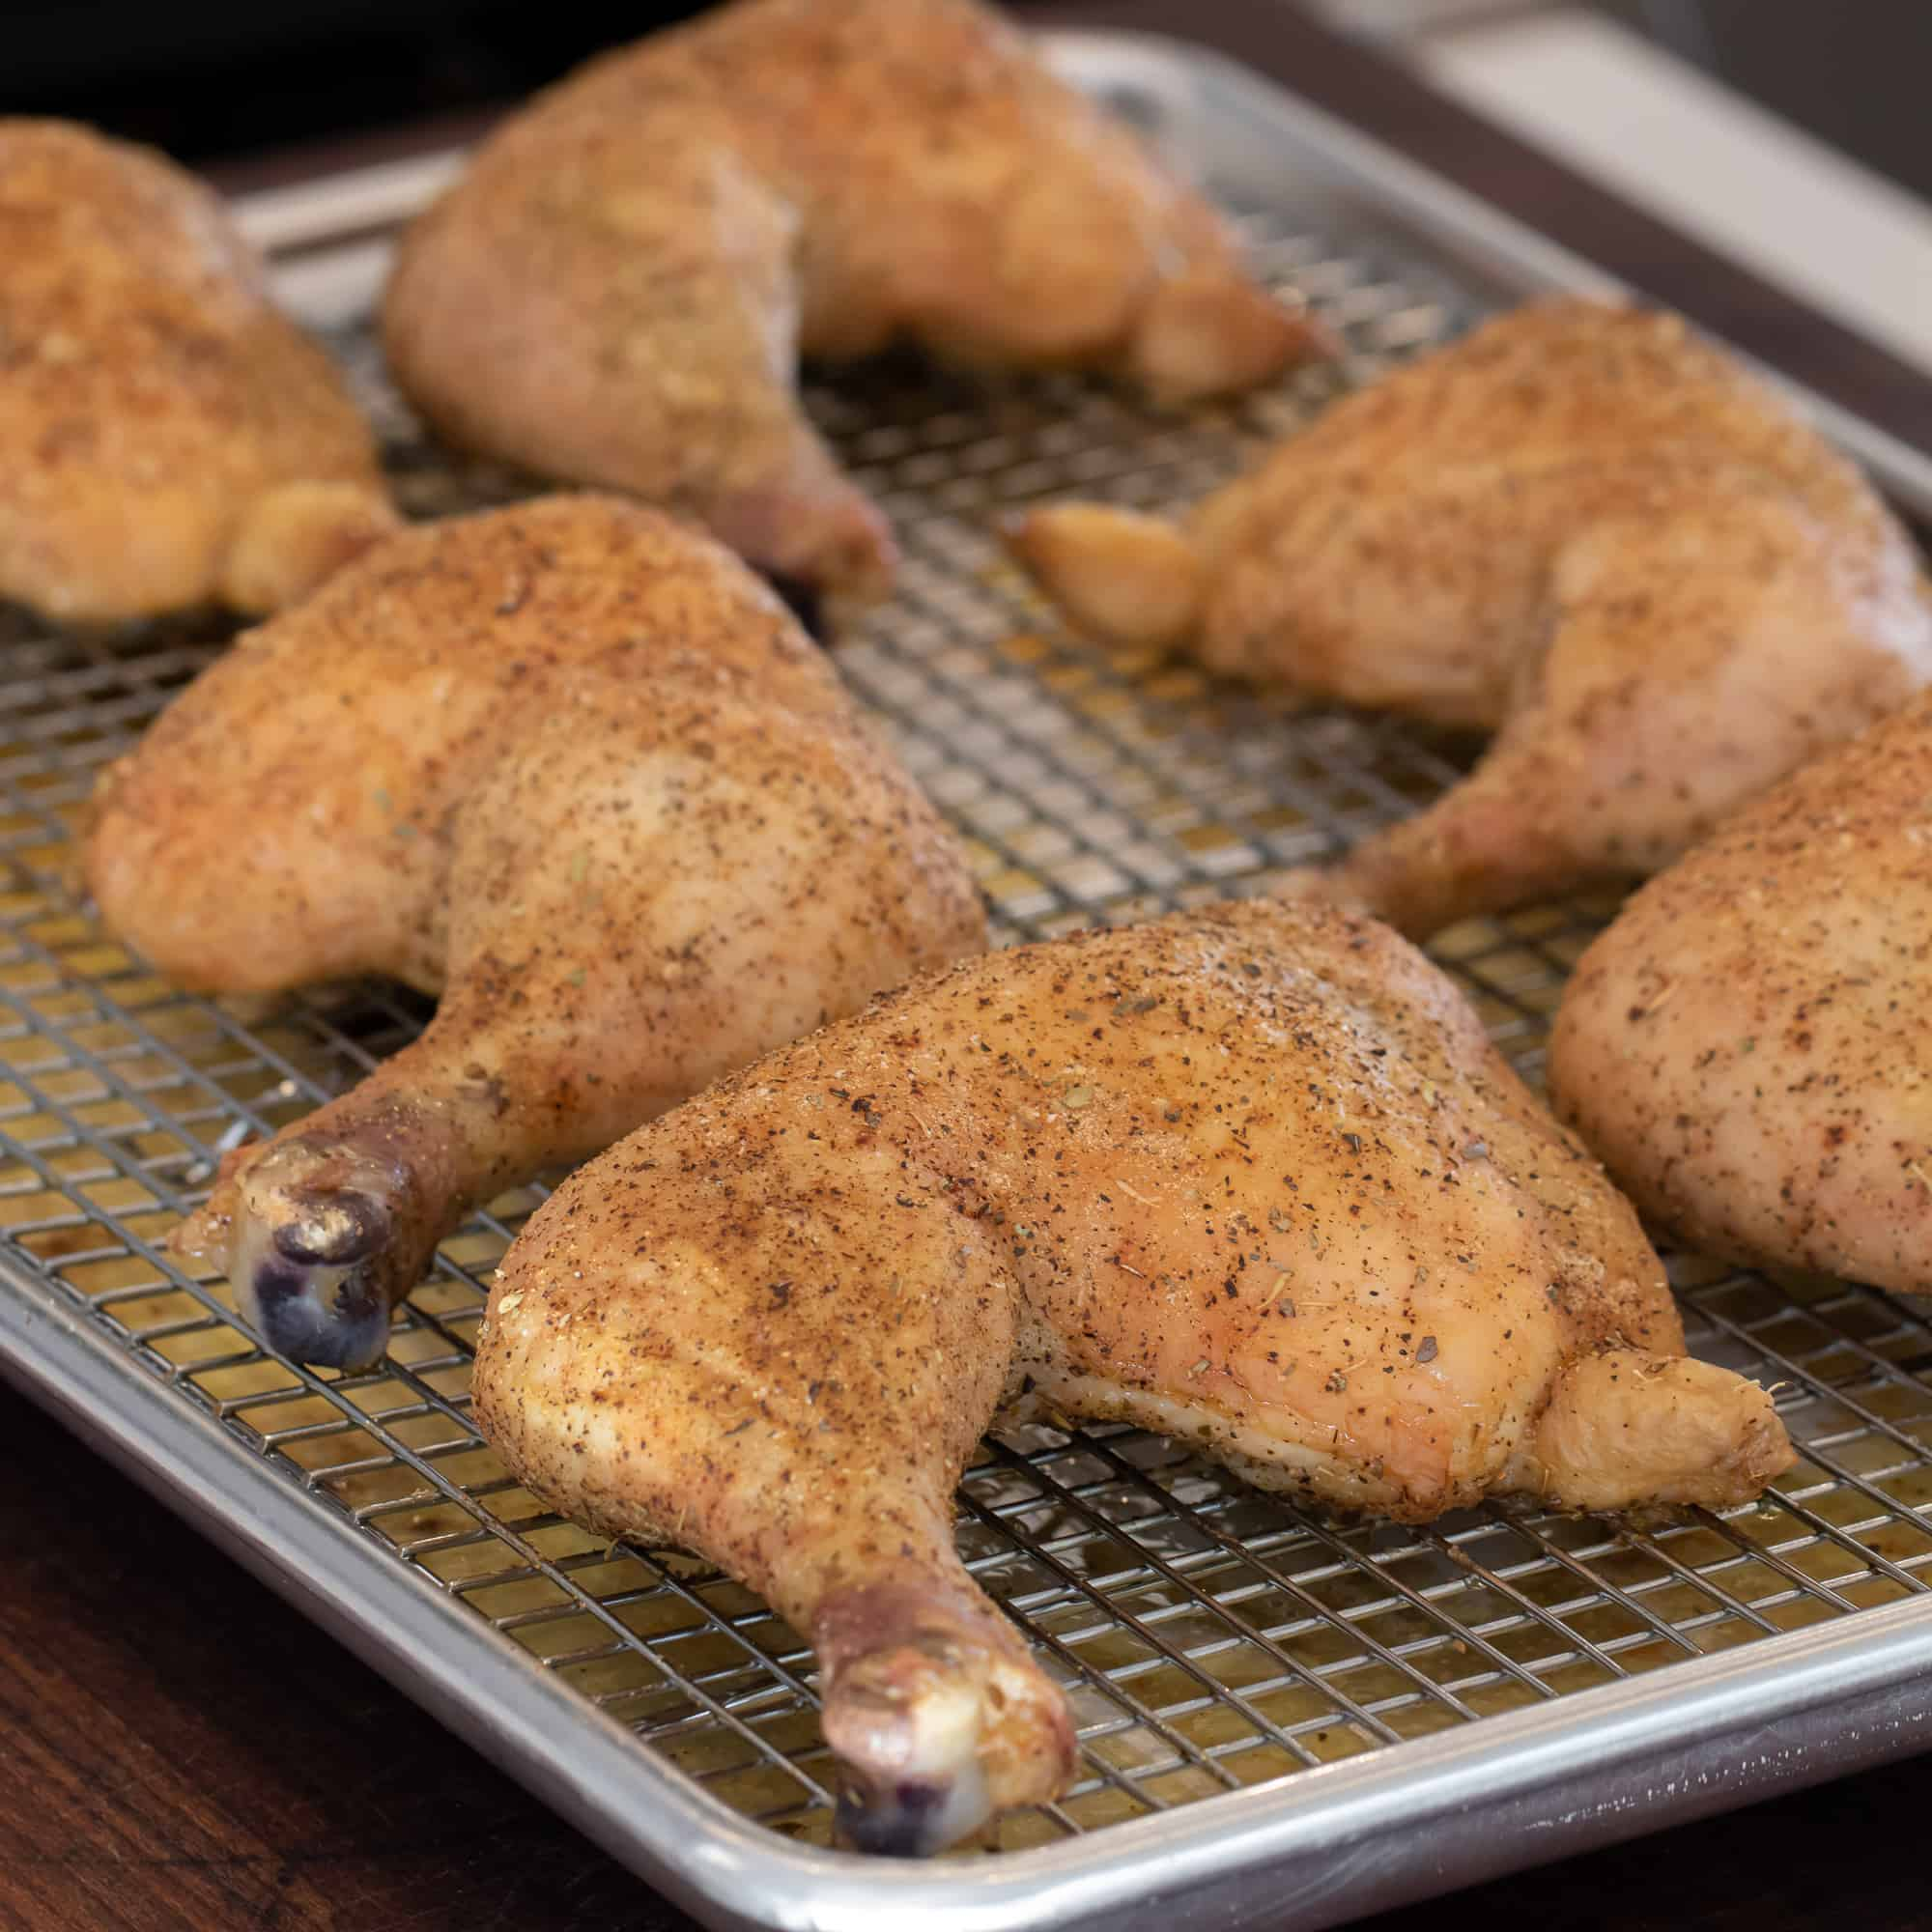 Let the chicken rest on the bakers rack for a few minutes before serving.